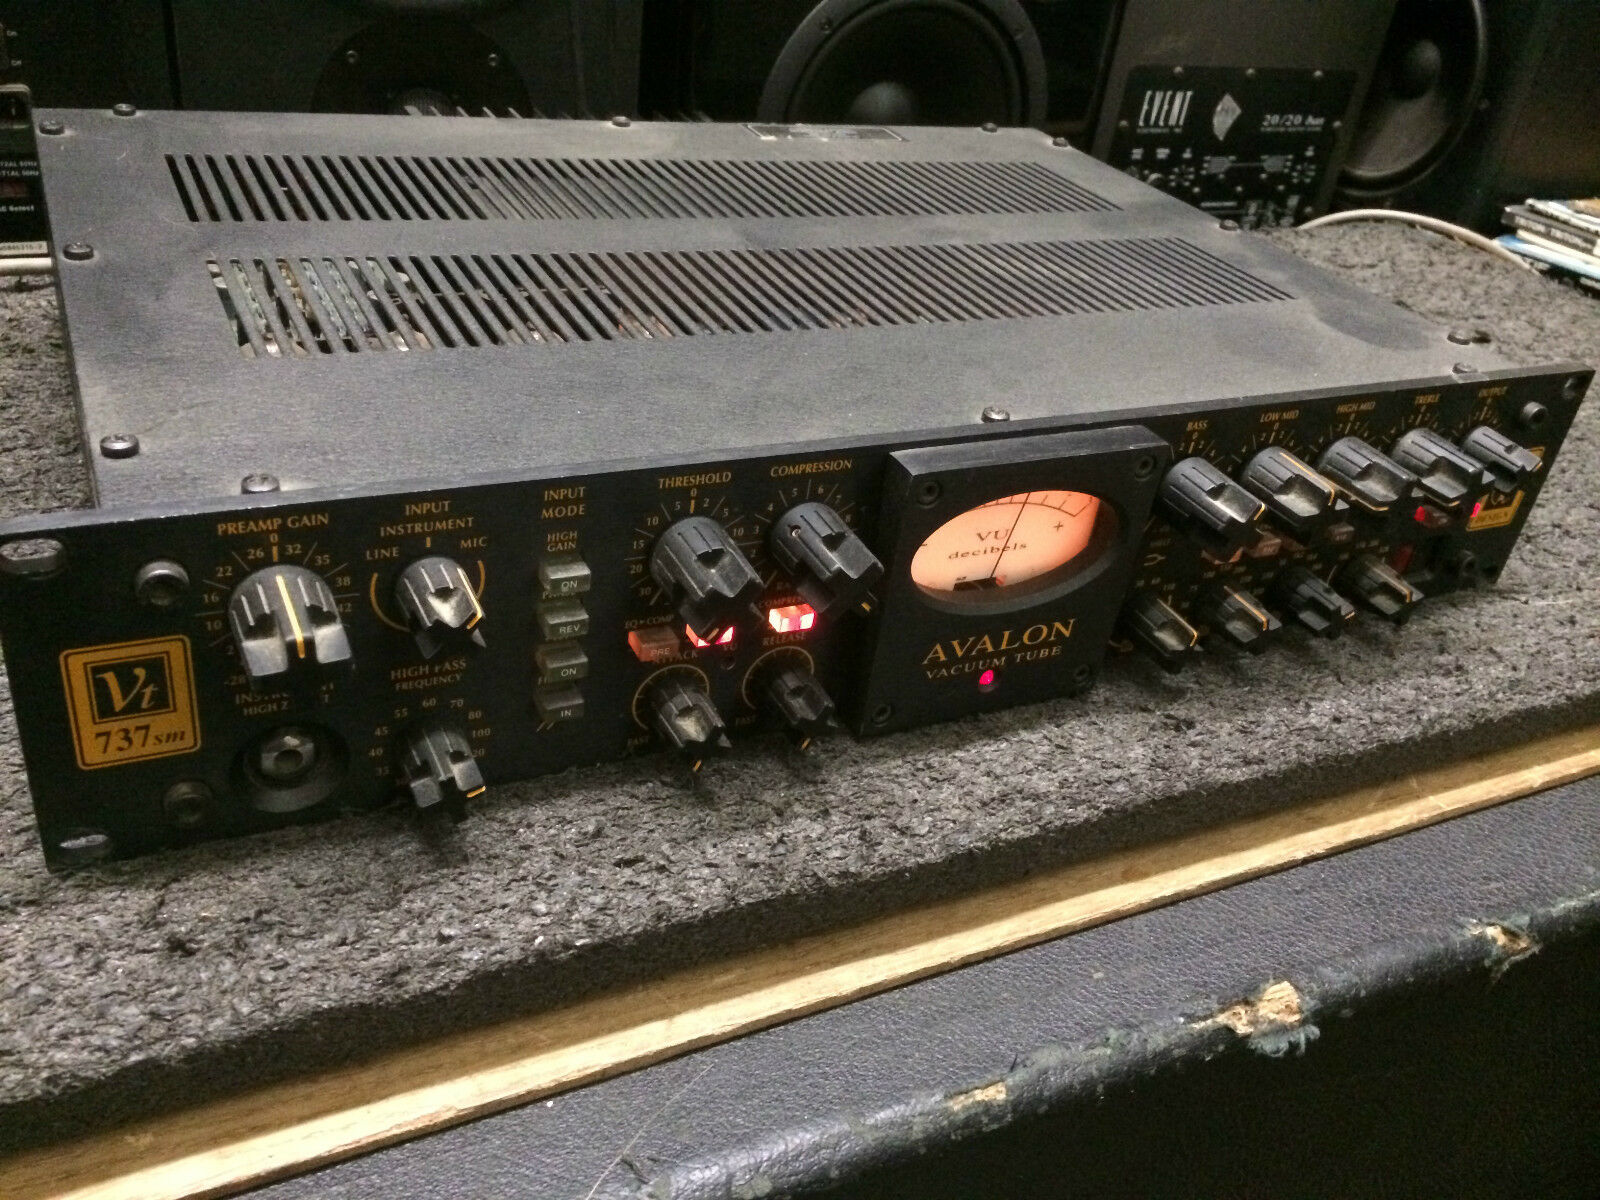 Avalon 737 Sm Tube Mic Pre Eq Compressor Vt Sp Amp Marcenary Local Radio Repair Shops We Are Open 6 Days A Week For Pick Up At Armens Music Shop